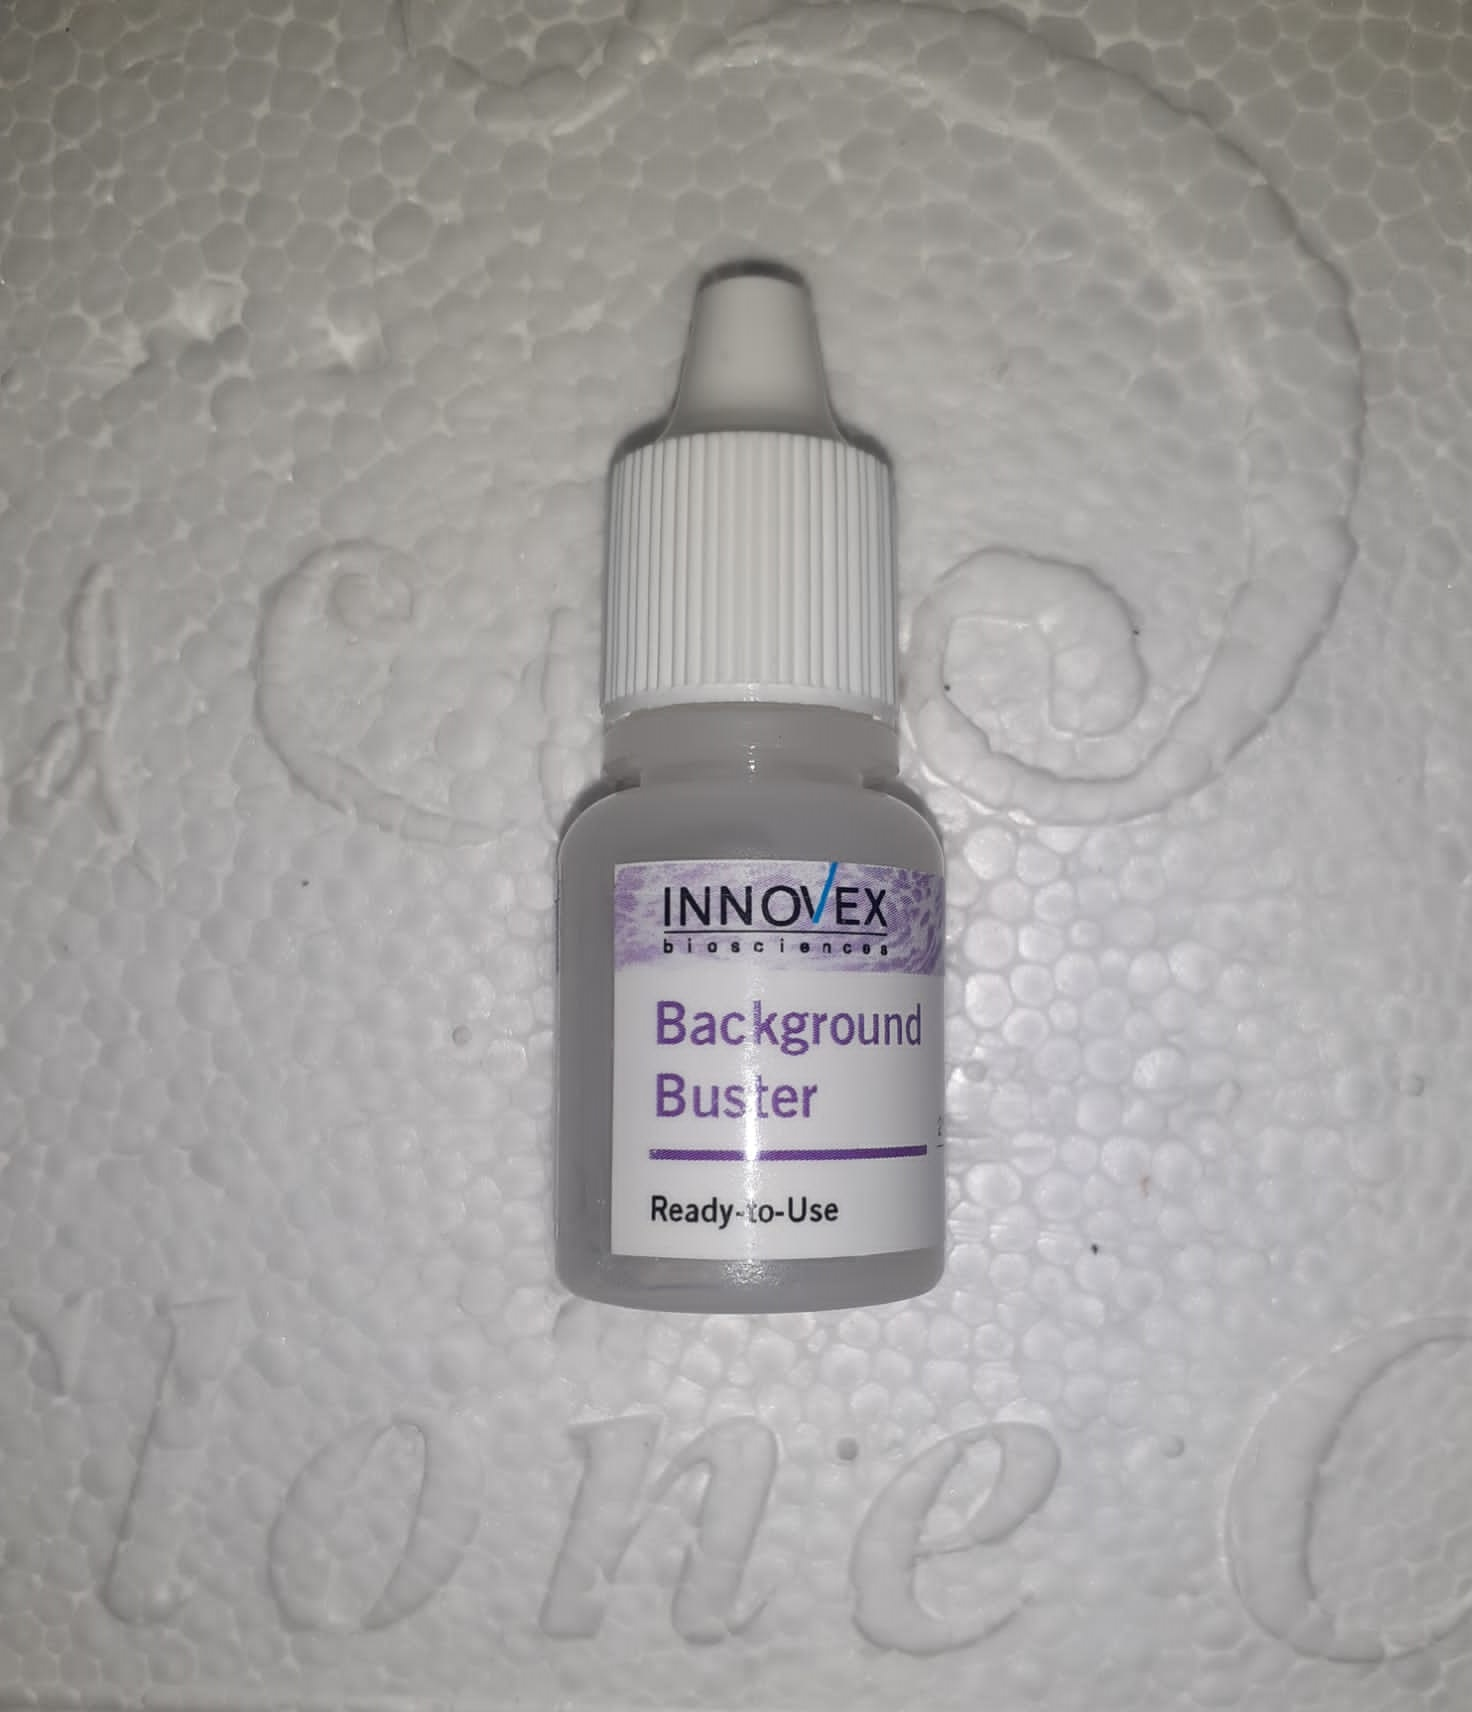 innovexbio background buster peptide